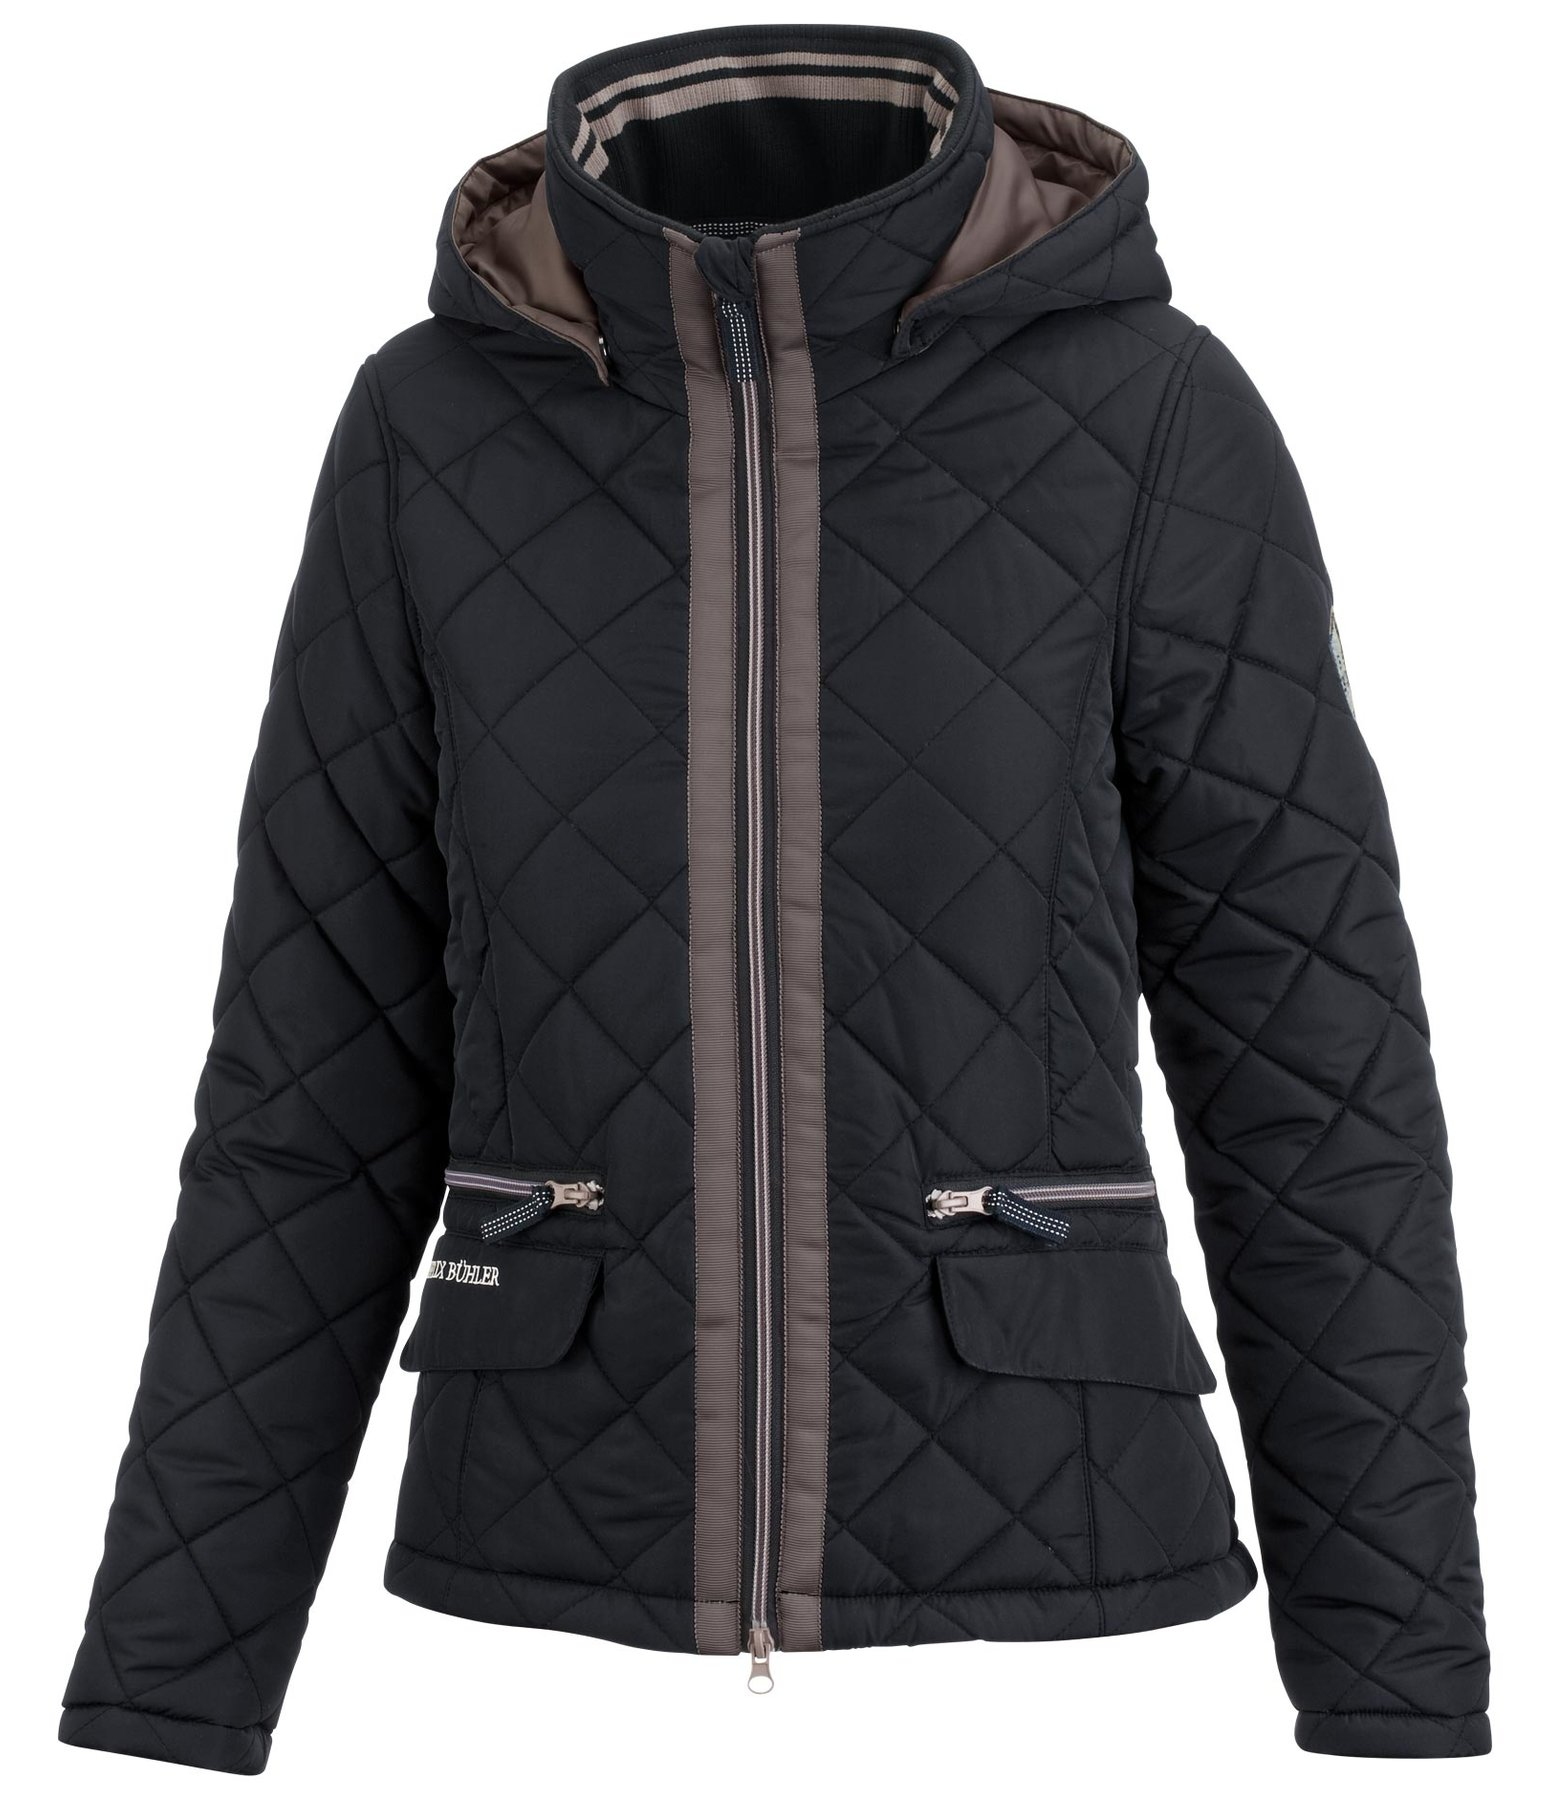 Hooded Quilted Jacket Annika Winter Riding Jackets